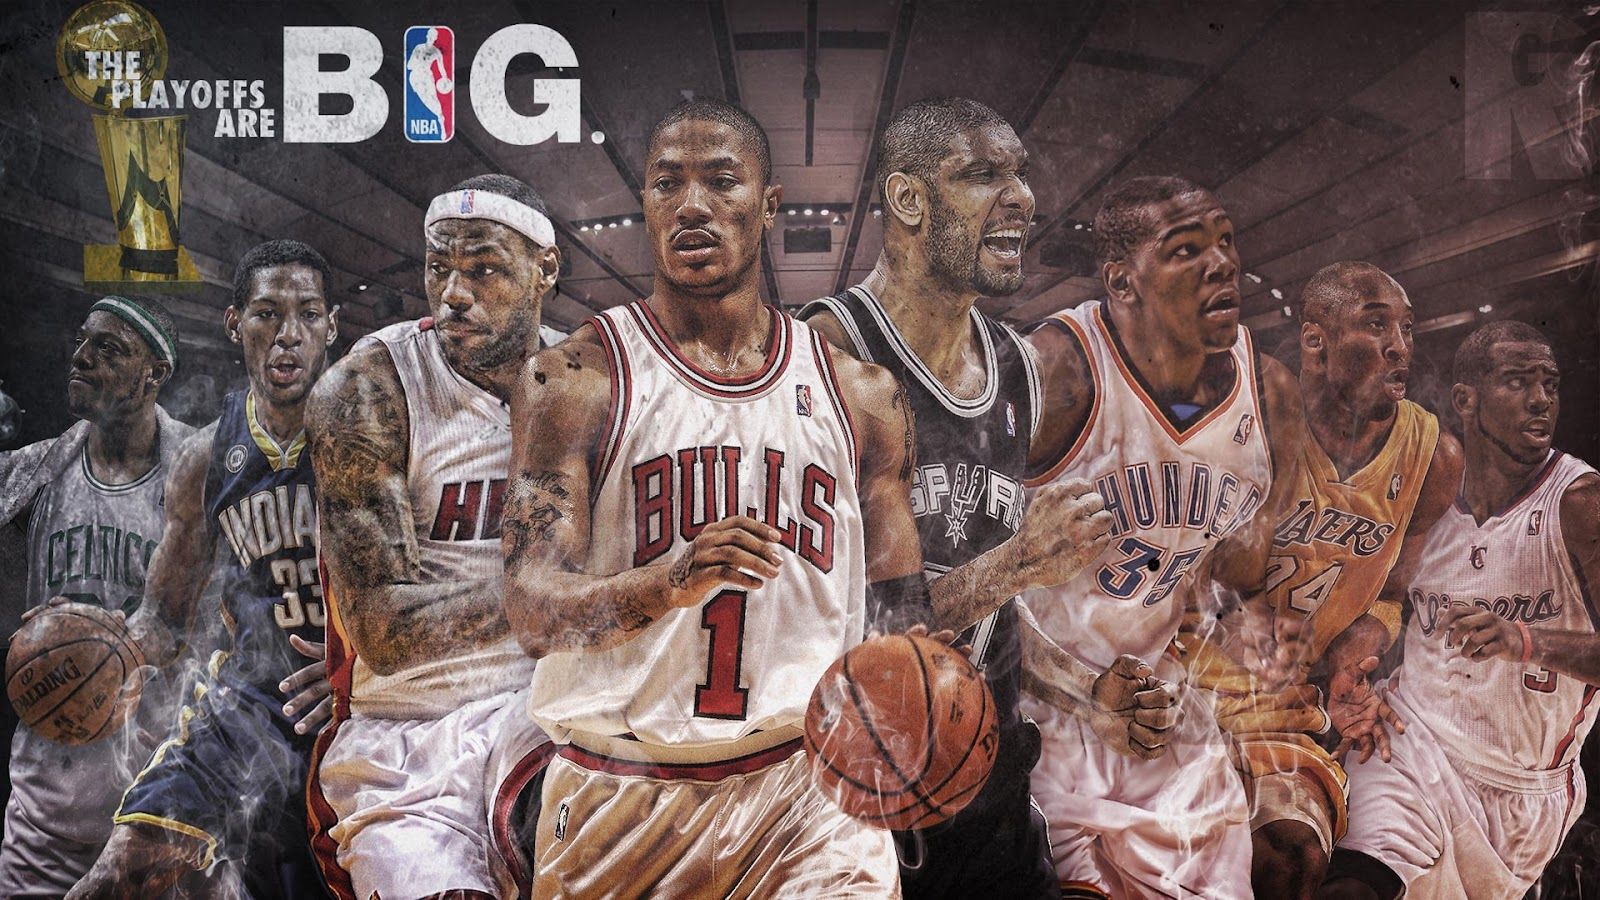 A Widescreen Wallpaper 2012 NBA Playoffs Big Fan Of